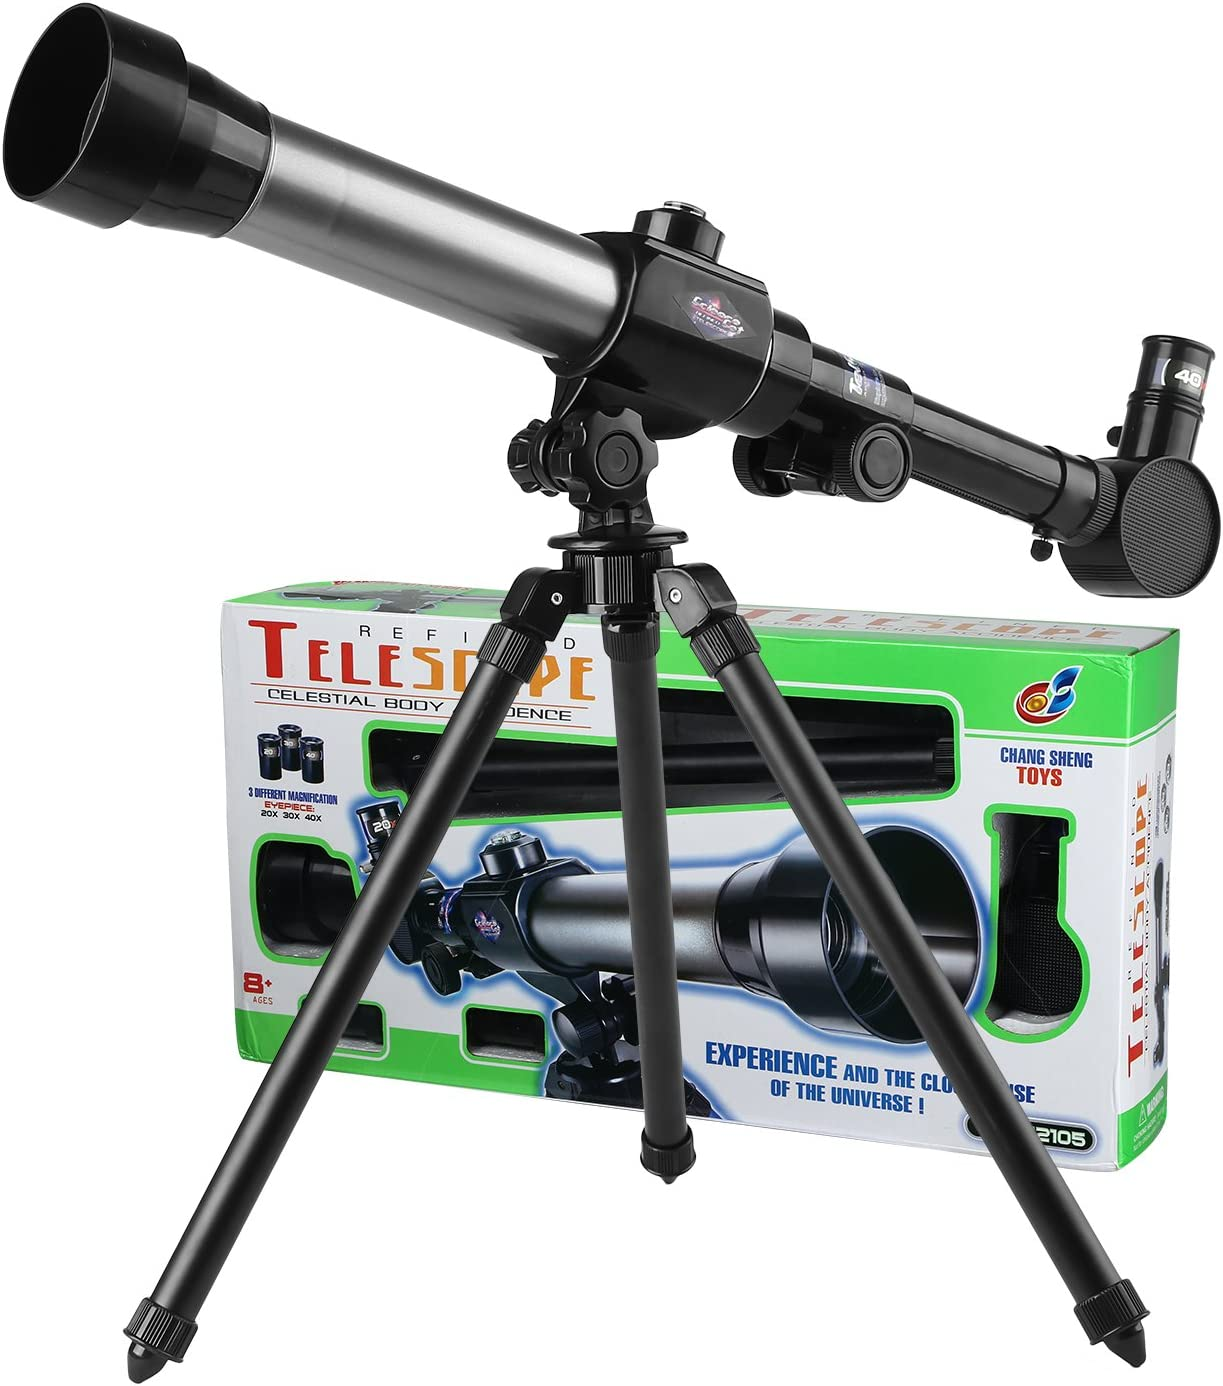 Top 17 Best Telescope For Kids (2020 Reviews & Buying Guide) 13